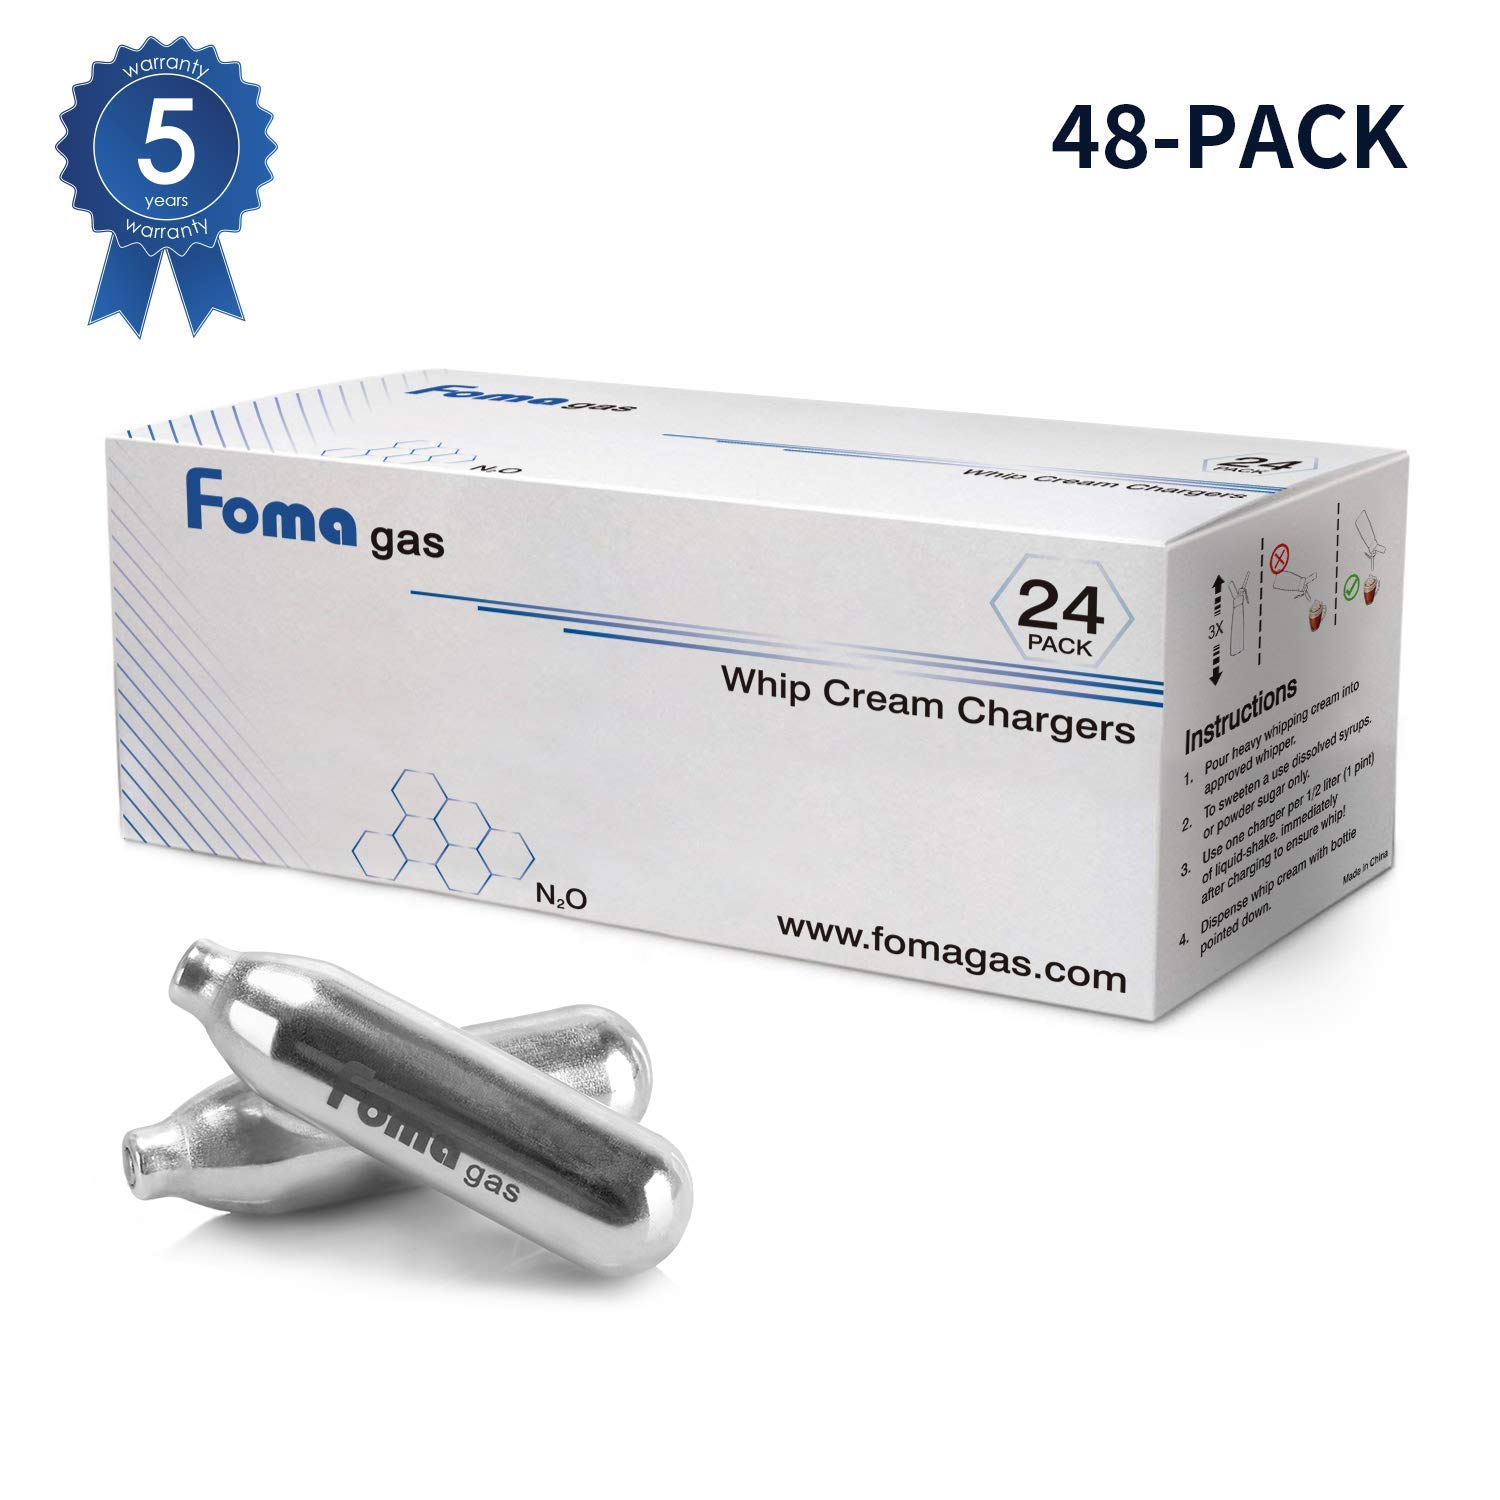 Whipped Cream Chargers N2O Chargers Whip Cream Chargers by Foma Gas (48 packs) by Foma Gas (Image #1)